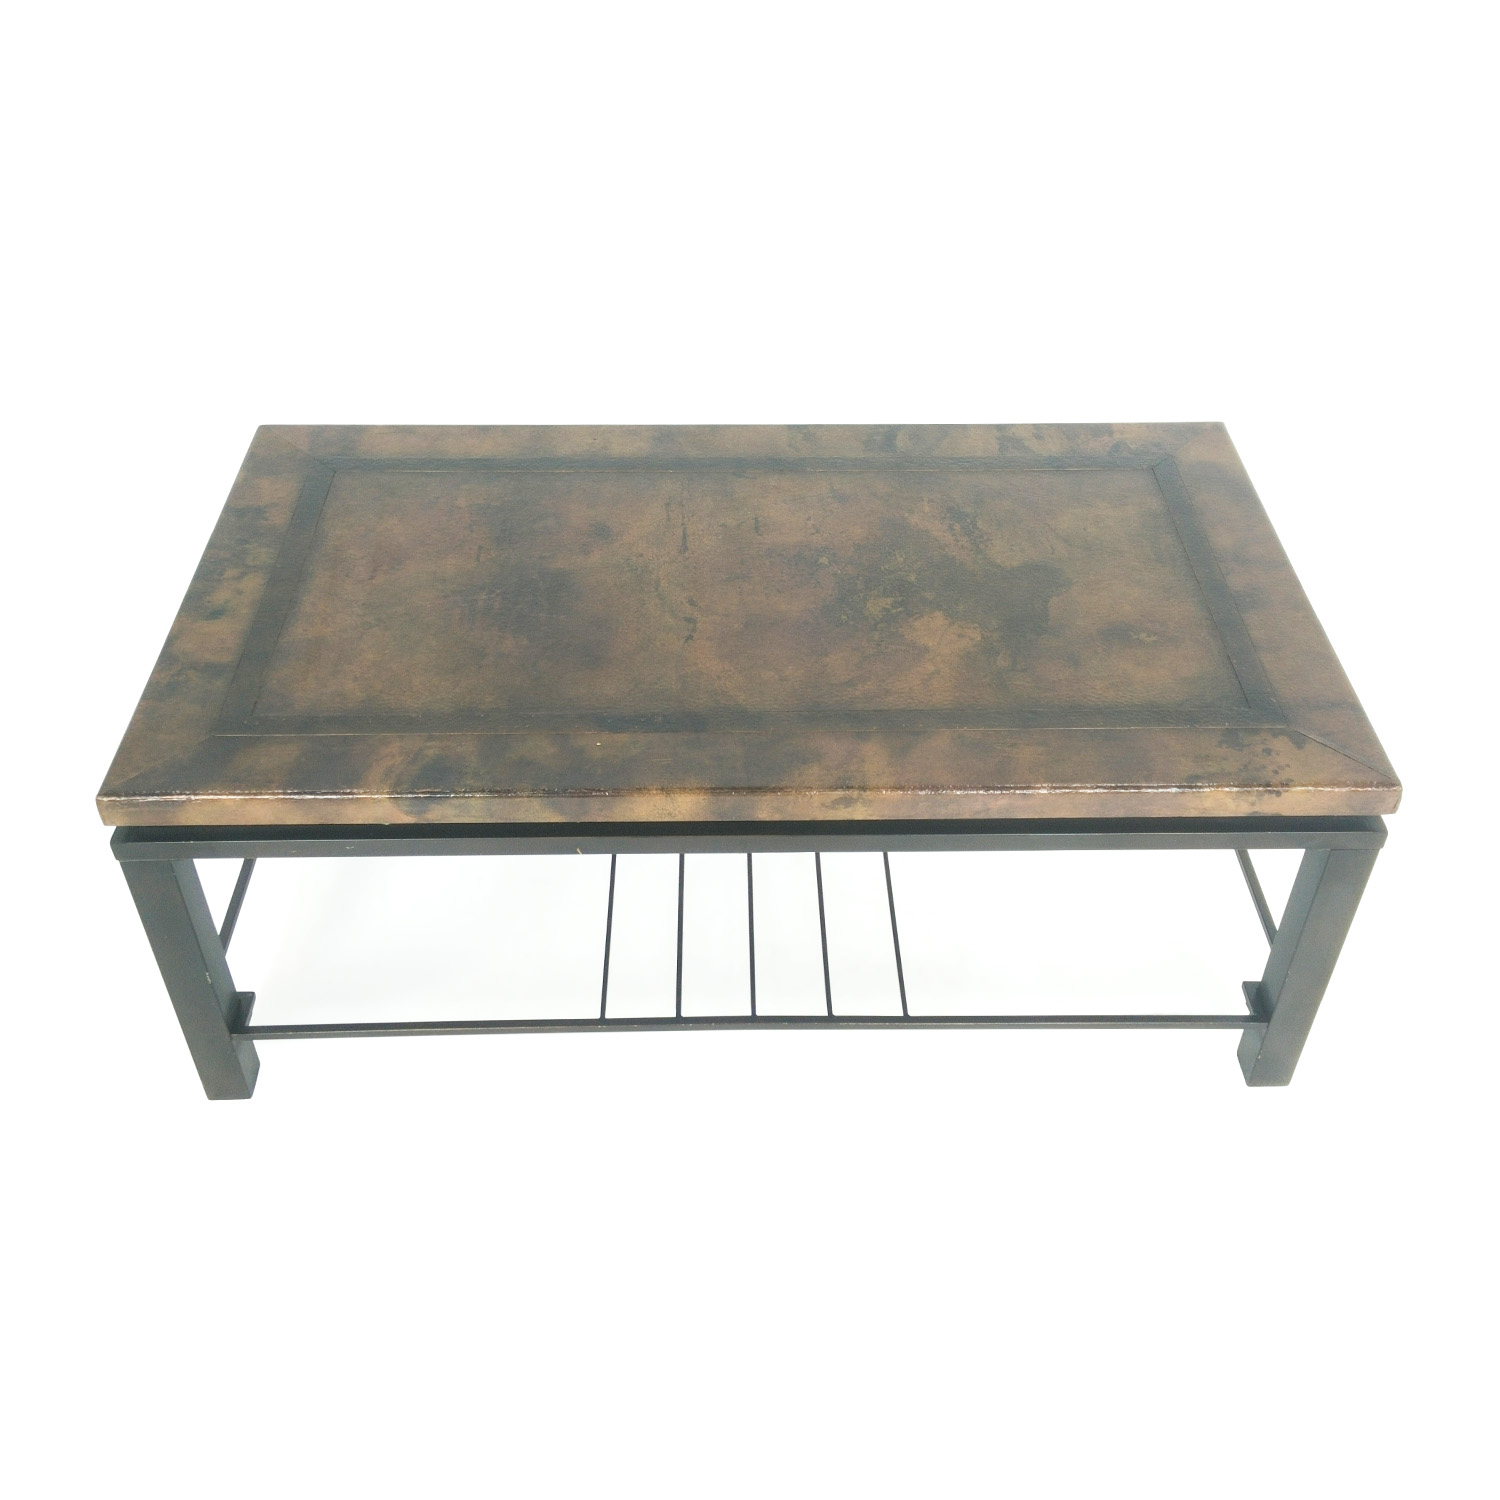 83 Off Vintage Ottoman Coffee Table With Storage Storage